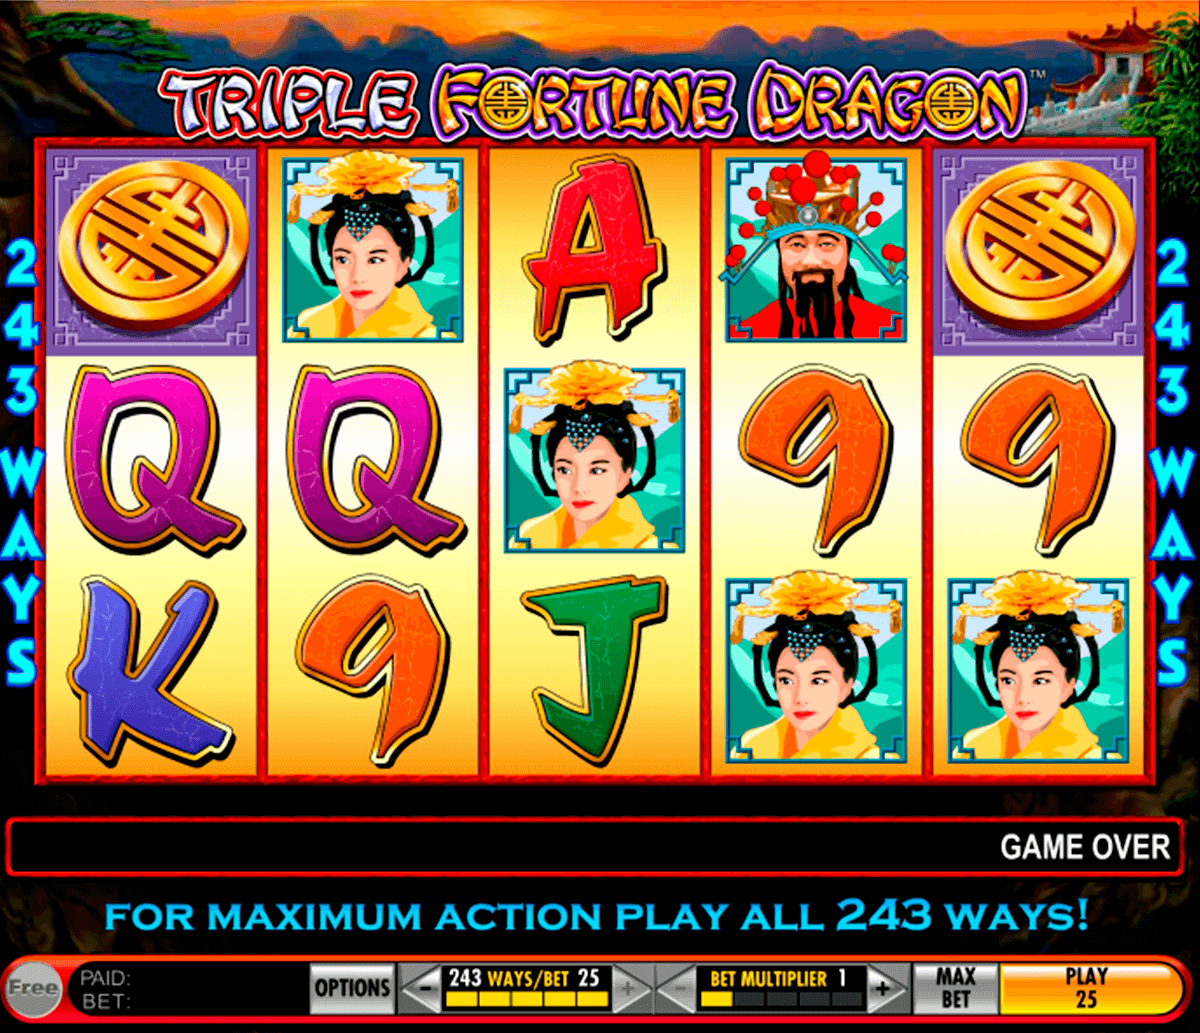 triple fortune dragon igt casino